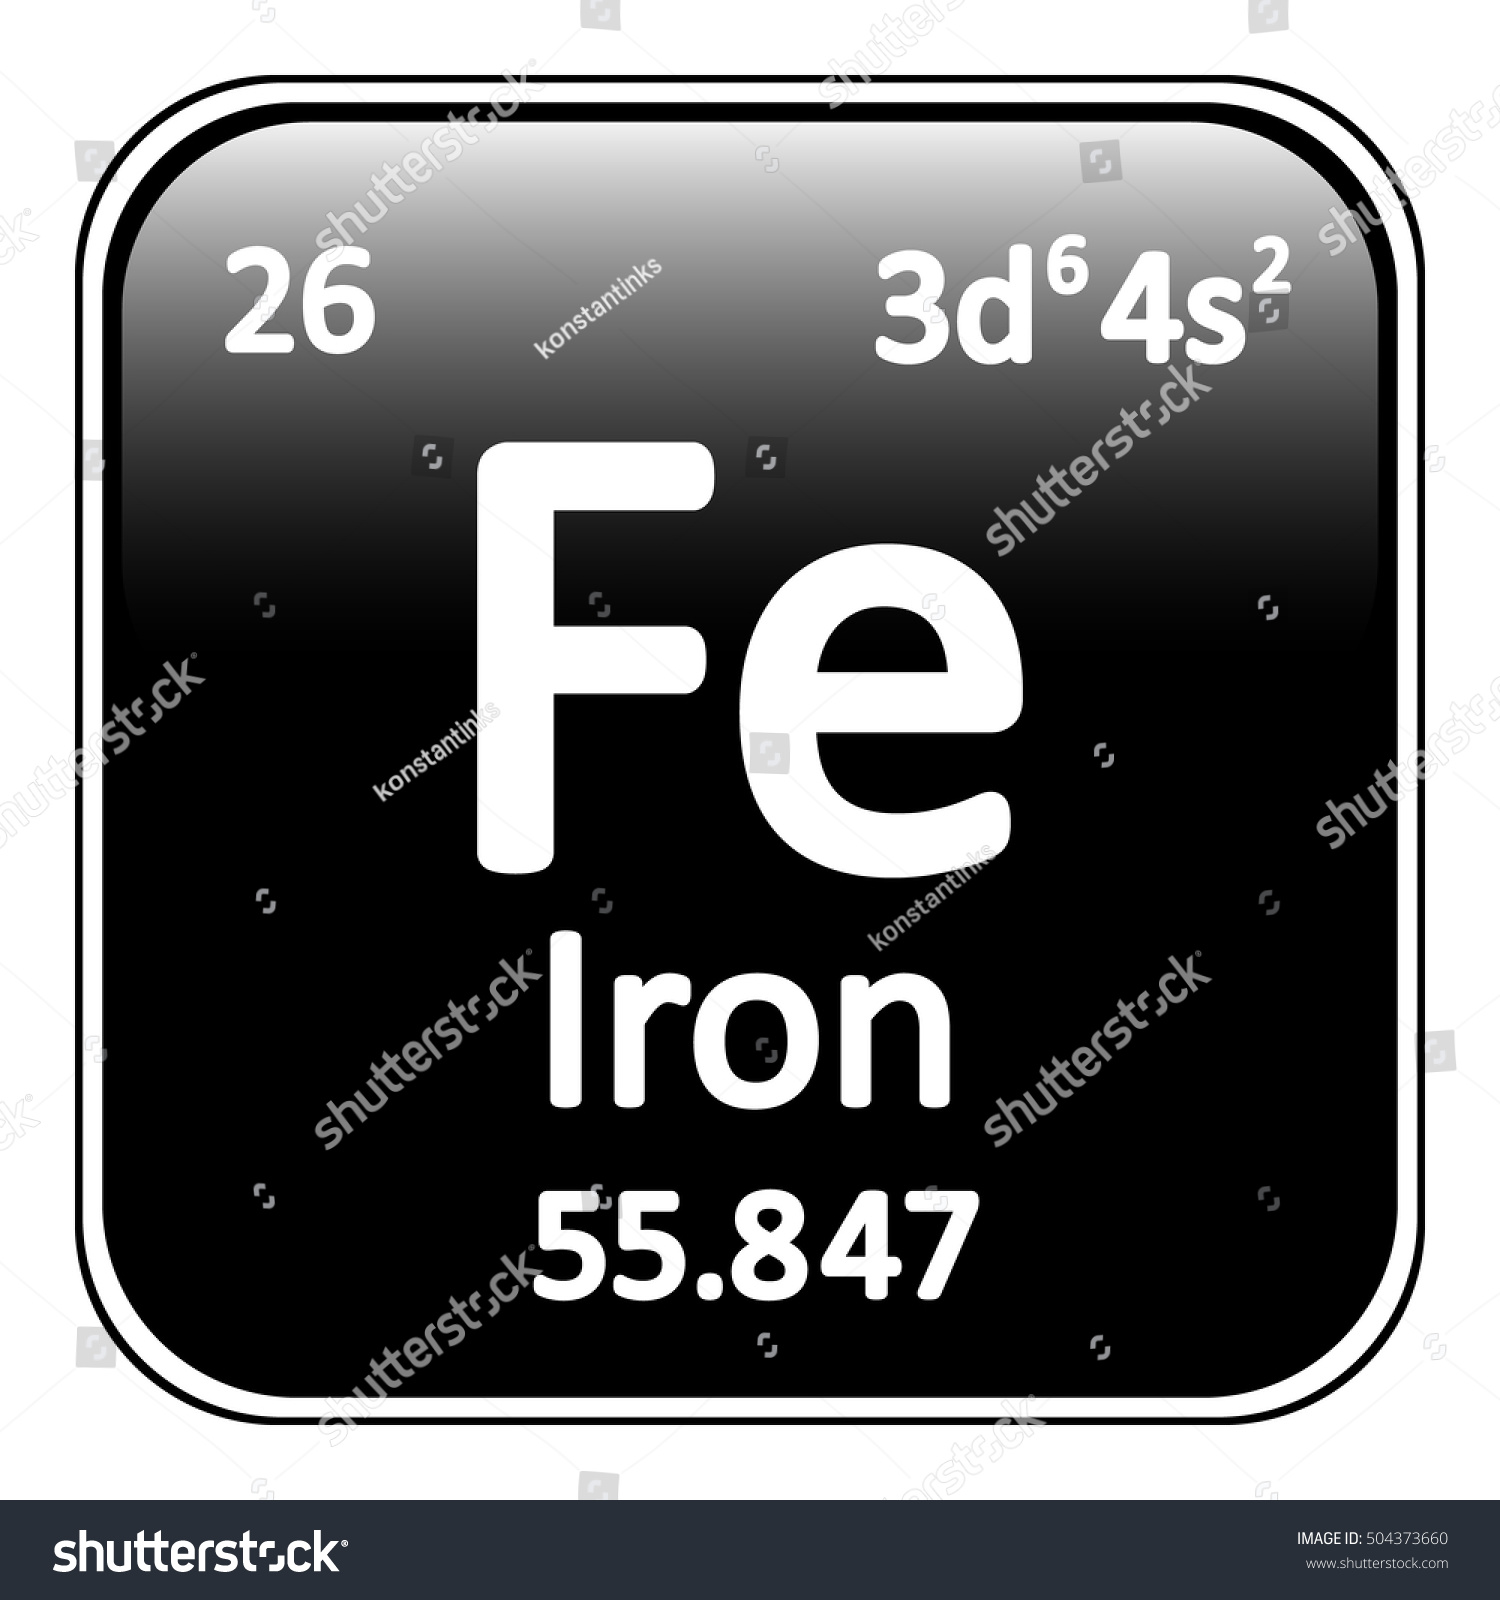 Iron on periodic table images periodic table images symbol for iron on periodic table images periodic table images whats iron on the periodic table gamestrikefo Images